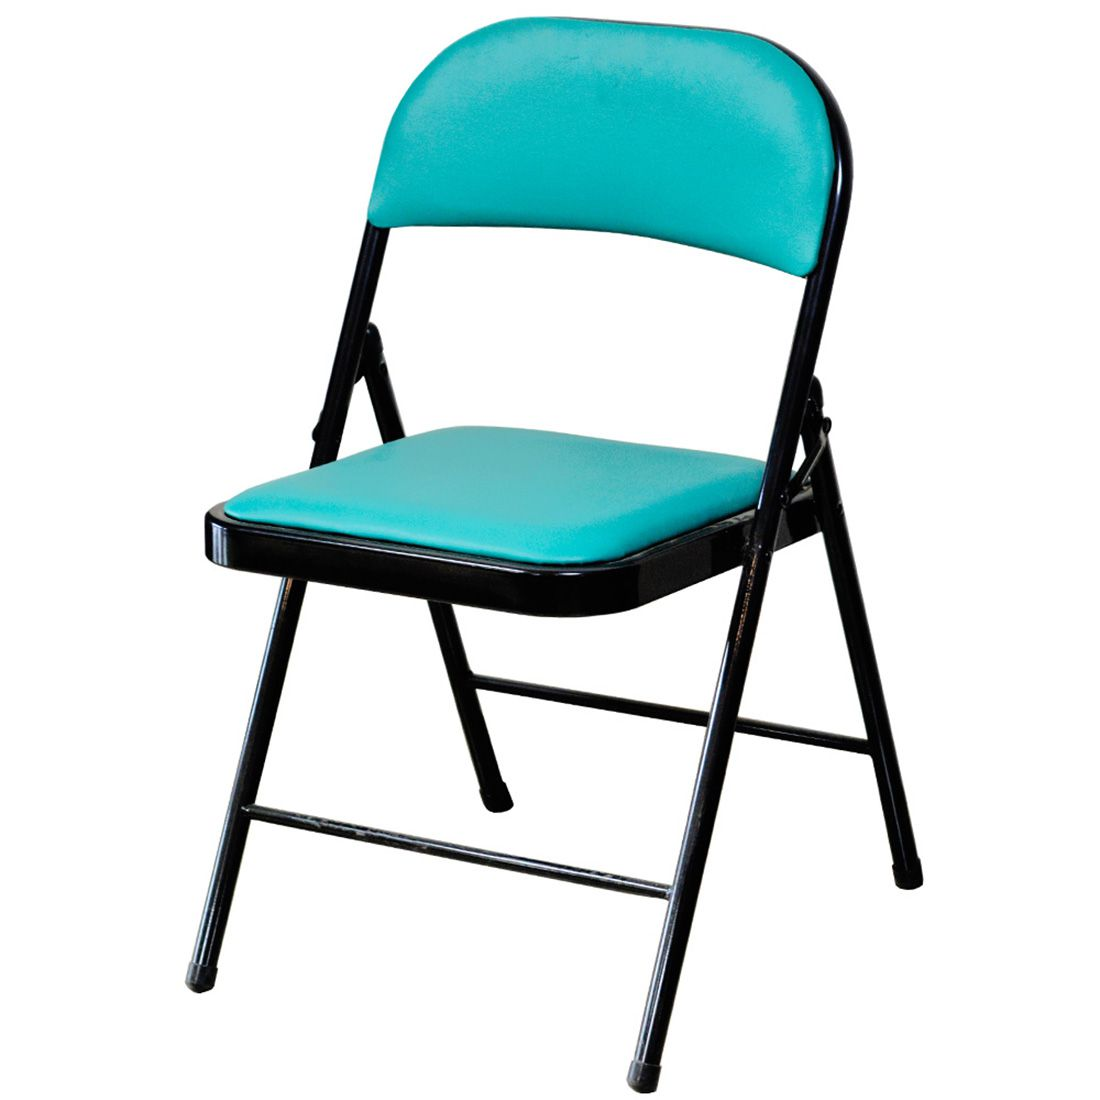 Groovy Eros Metal Folding Chair Buy Eros Metal Folding Chair Online At Best Prices In India On Snapdeal Gmtry Best Dining Table And Chair Ideas Images Gmtryco